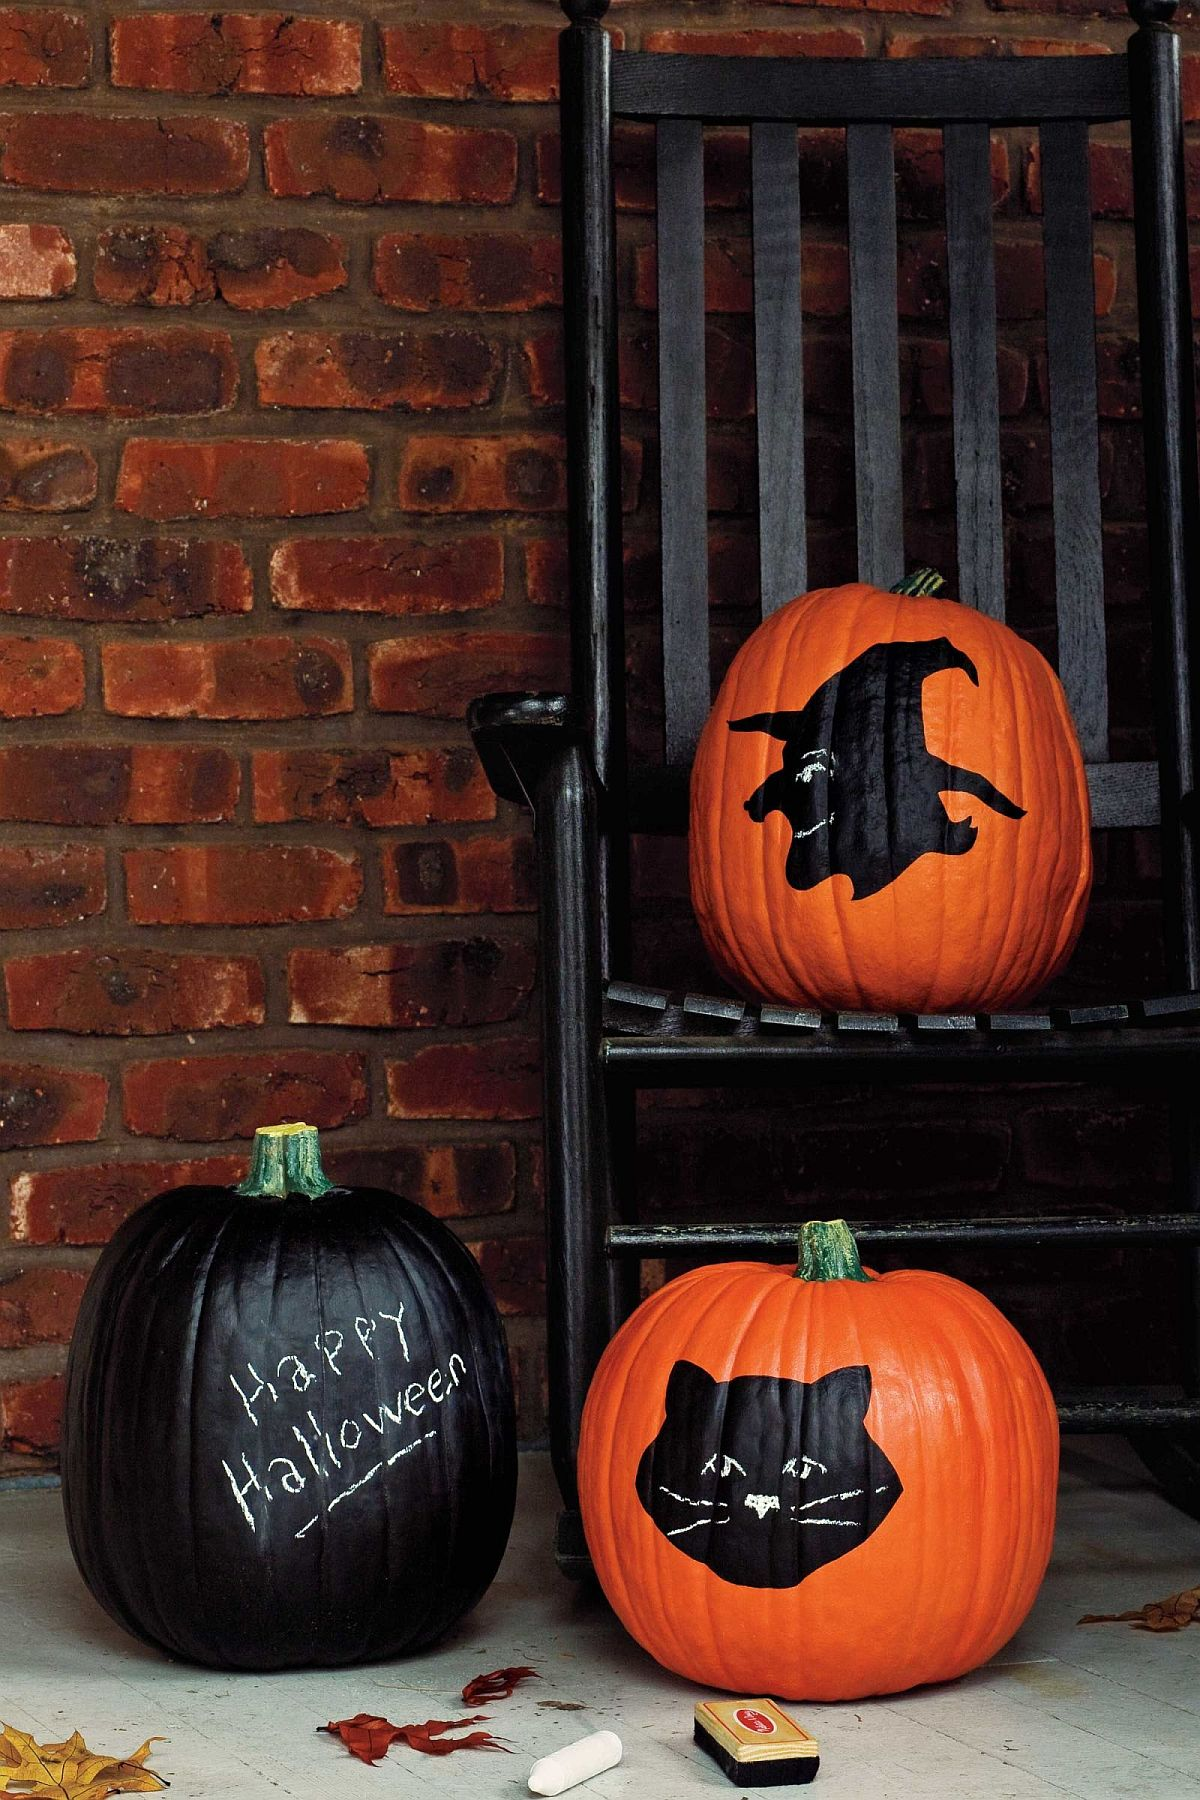 Painted pumpkin idea with chalkboard paint and cool motifs